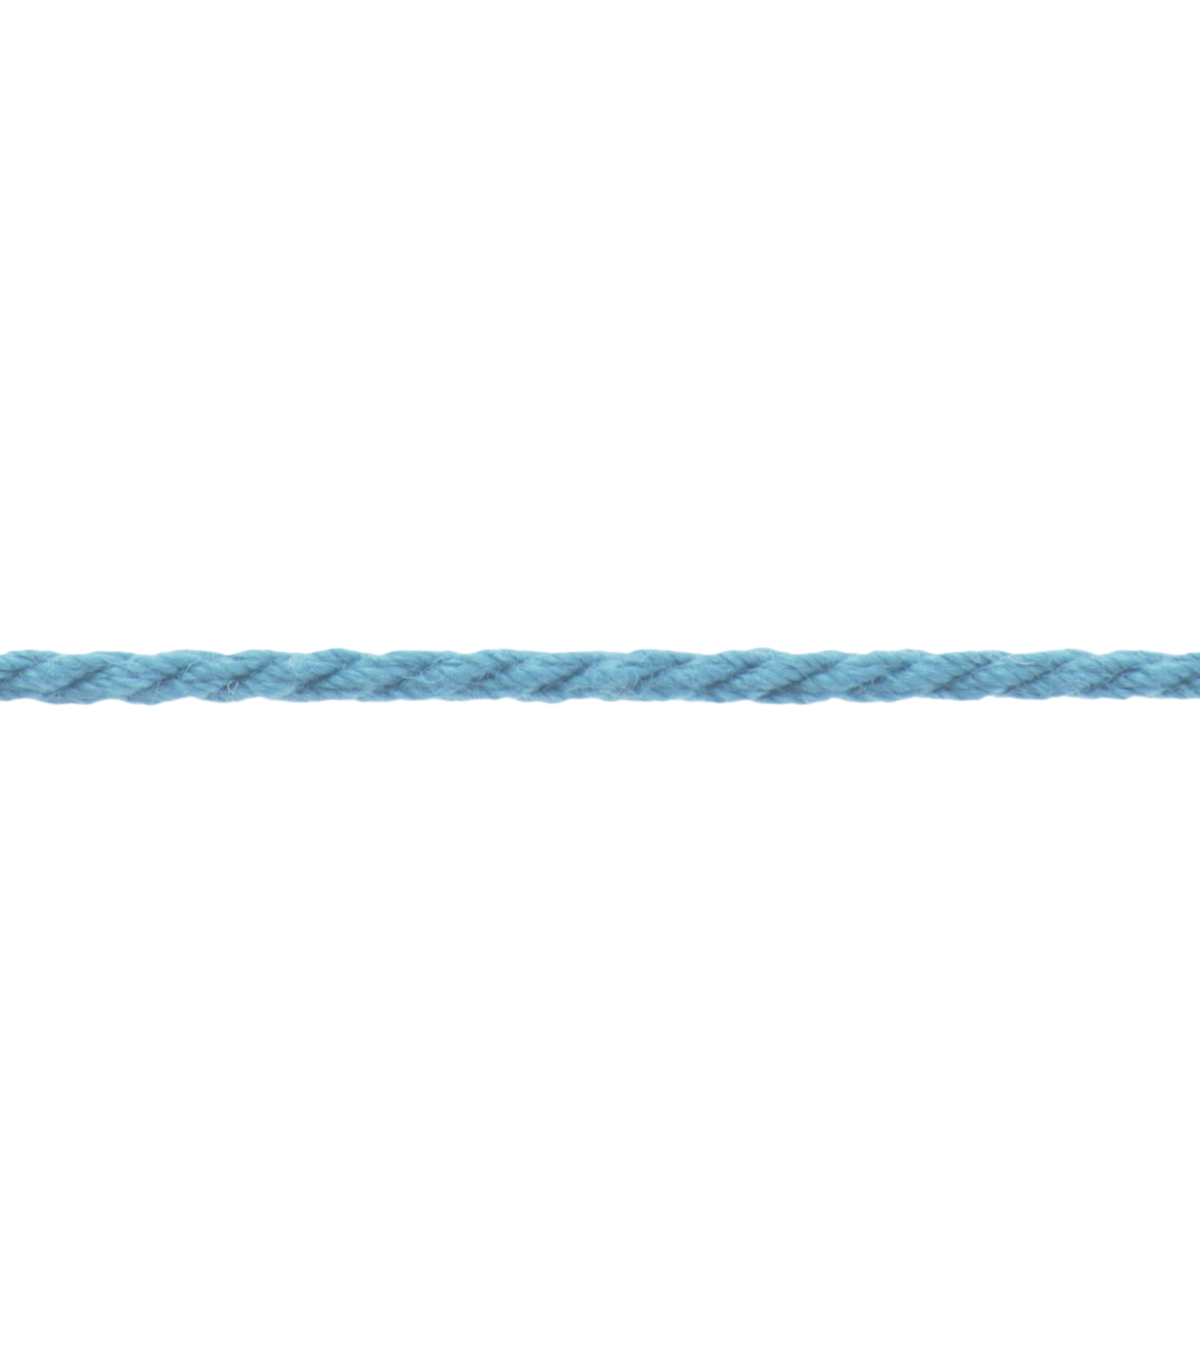 Bakers Twine Turquoise Apparel Trim- 10 yards